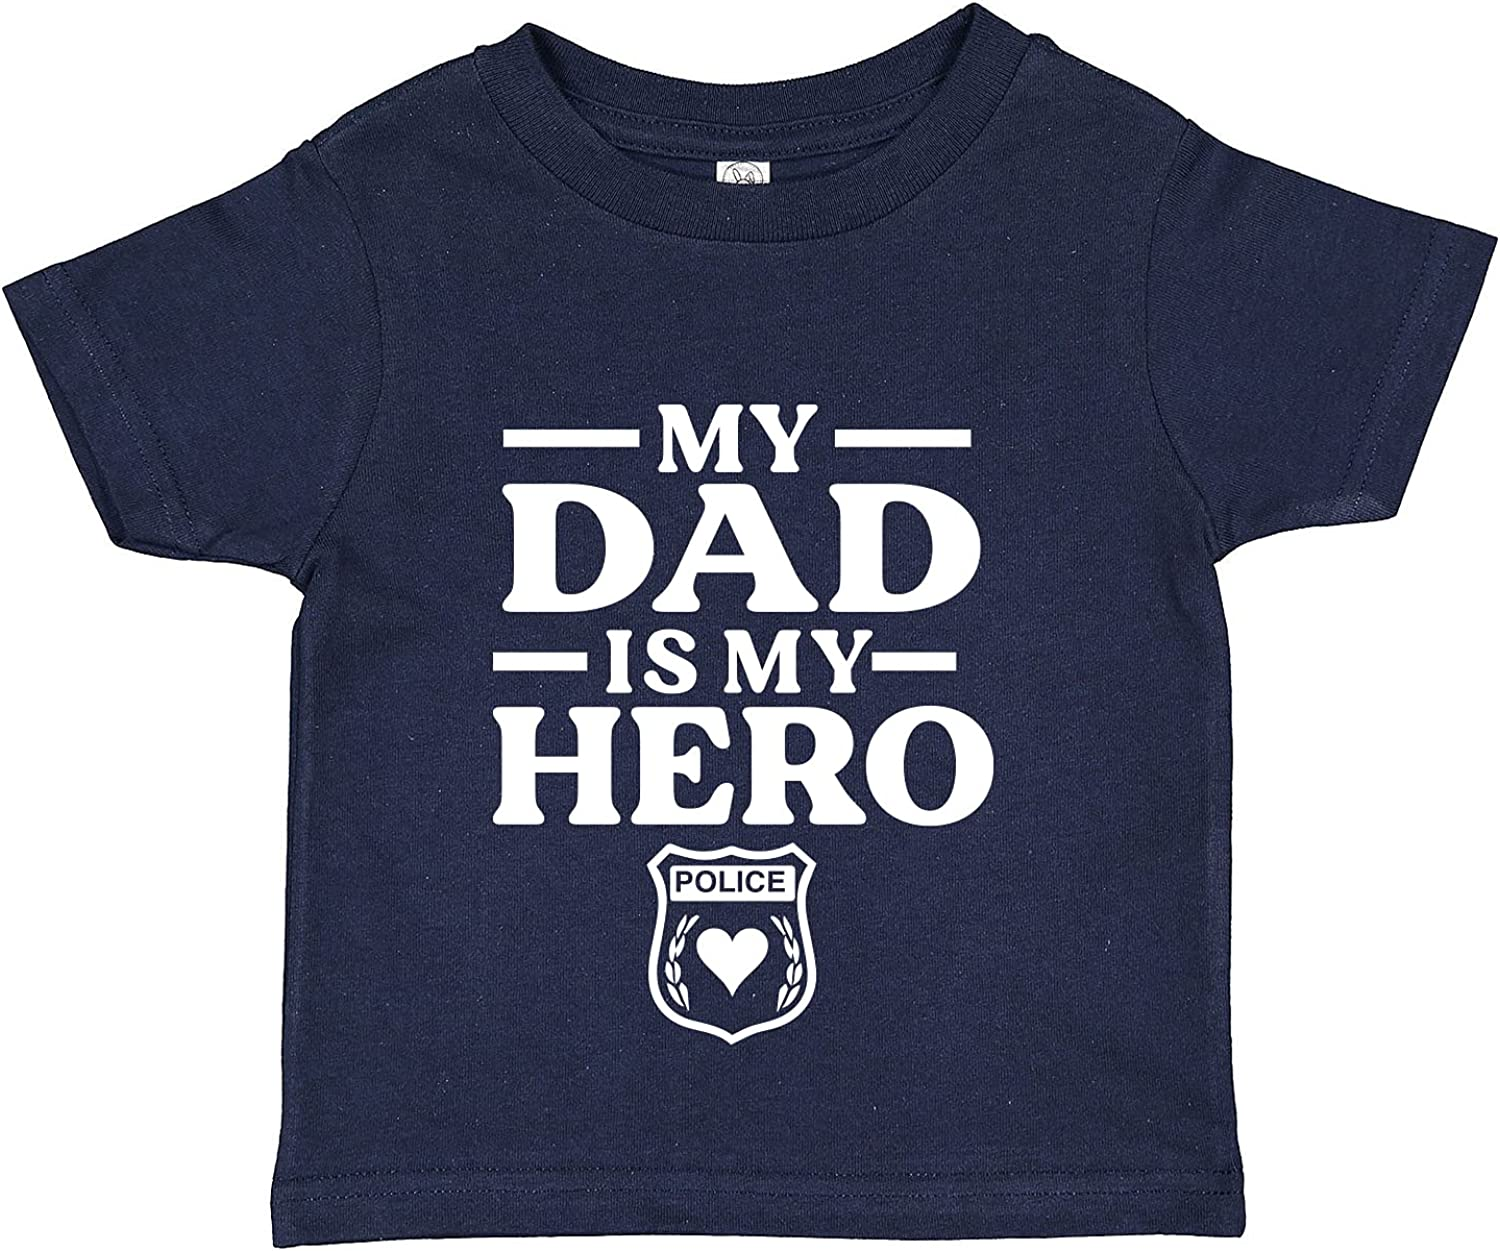 Tees & Tails My Dad is My Police Hero Baby Tee Shirt (Assorted Colors)